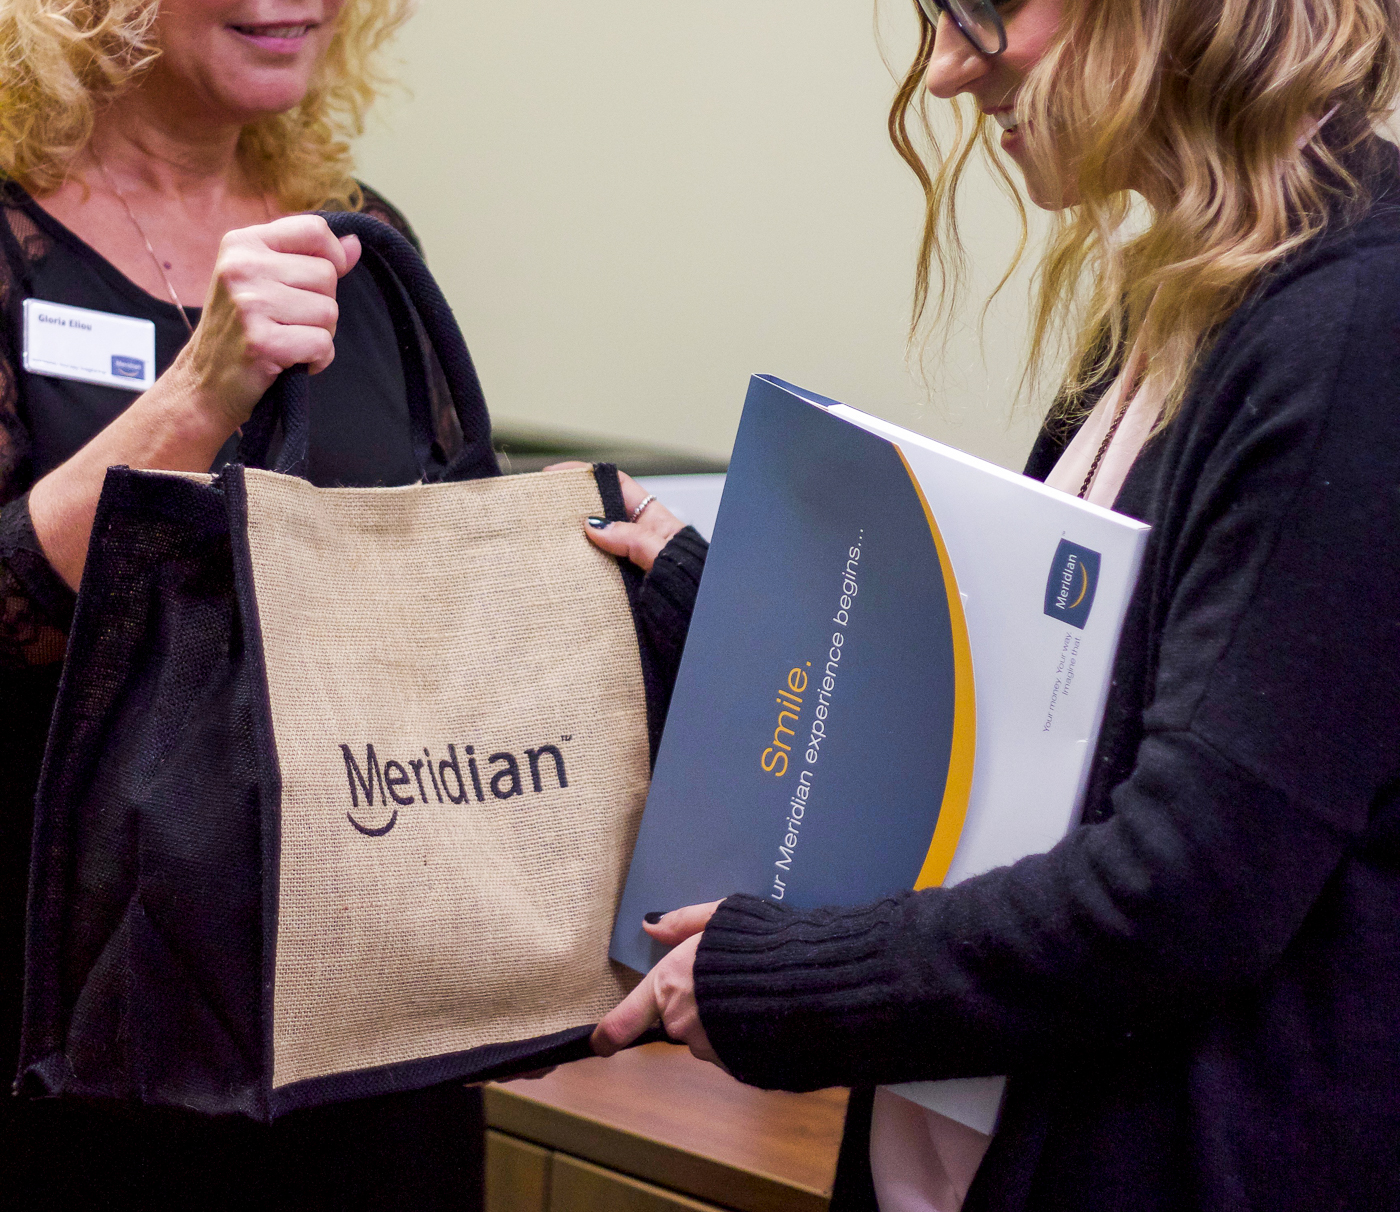 Toronto life and style blogger shares her experience with an advisor at Meridian Credit Union